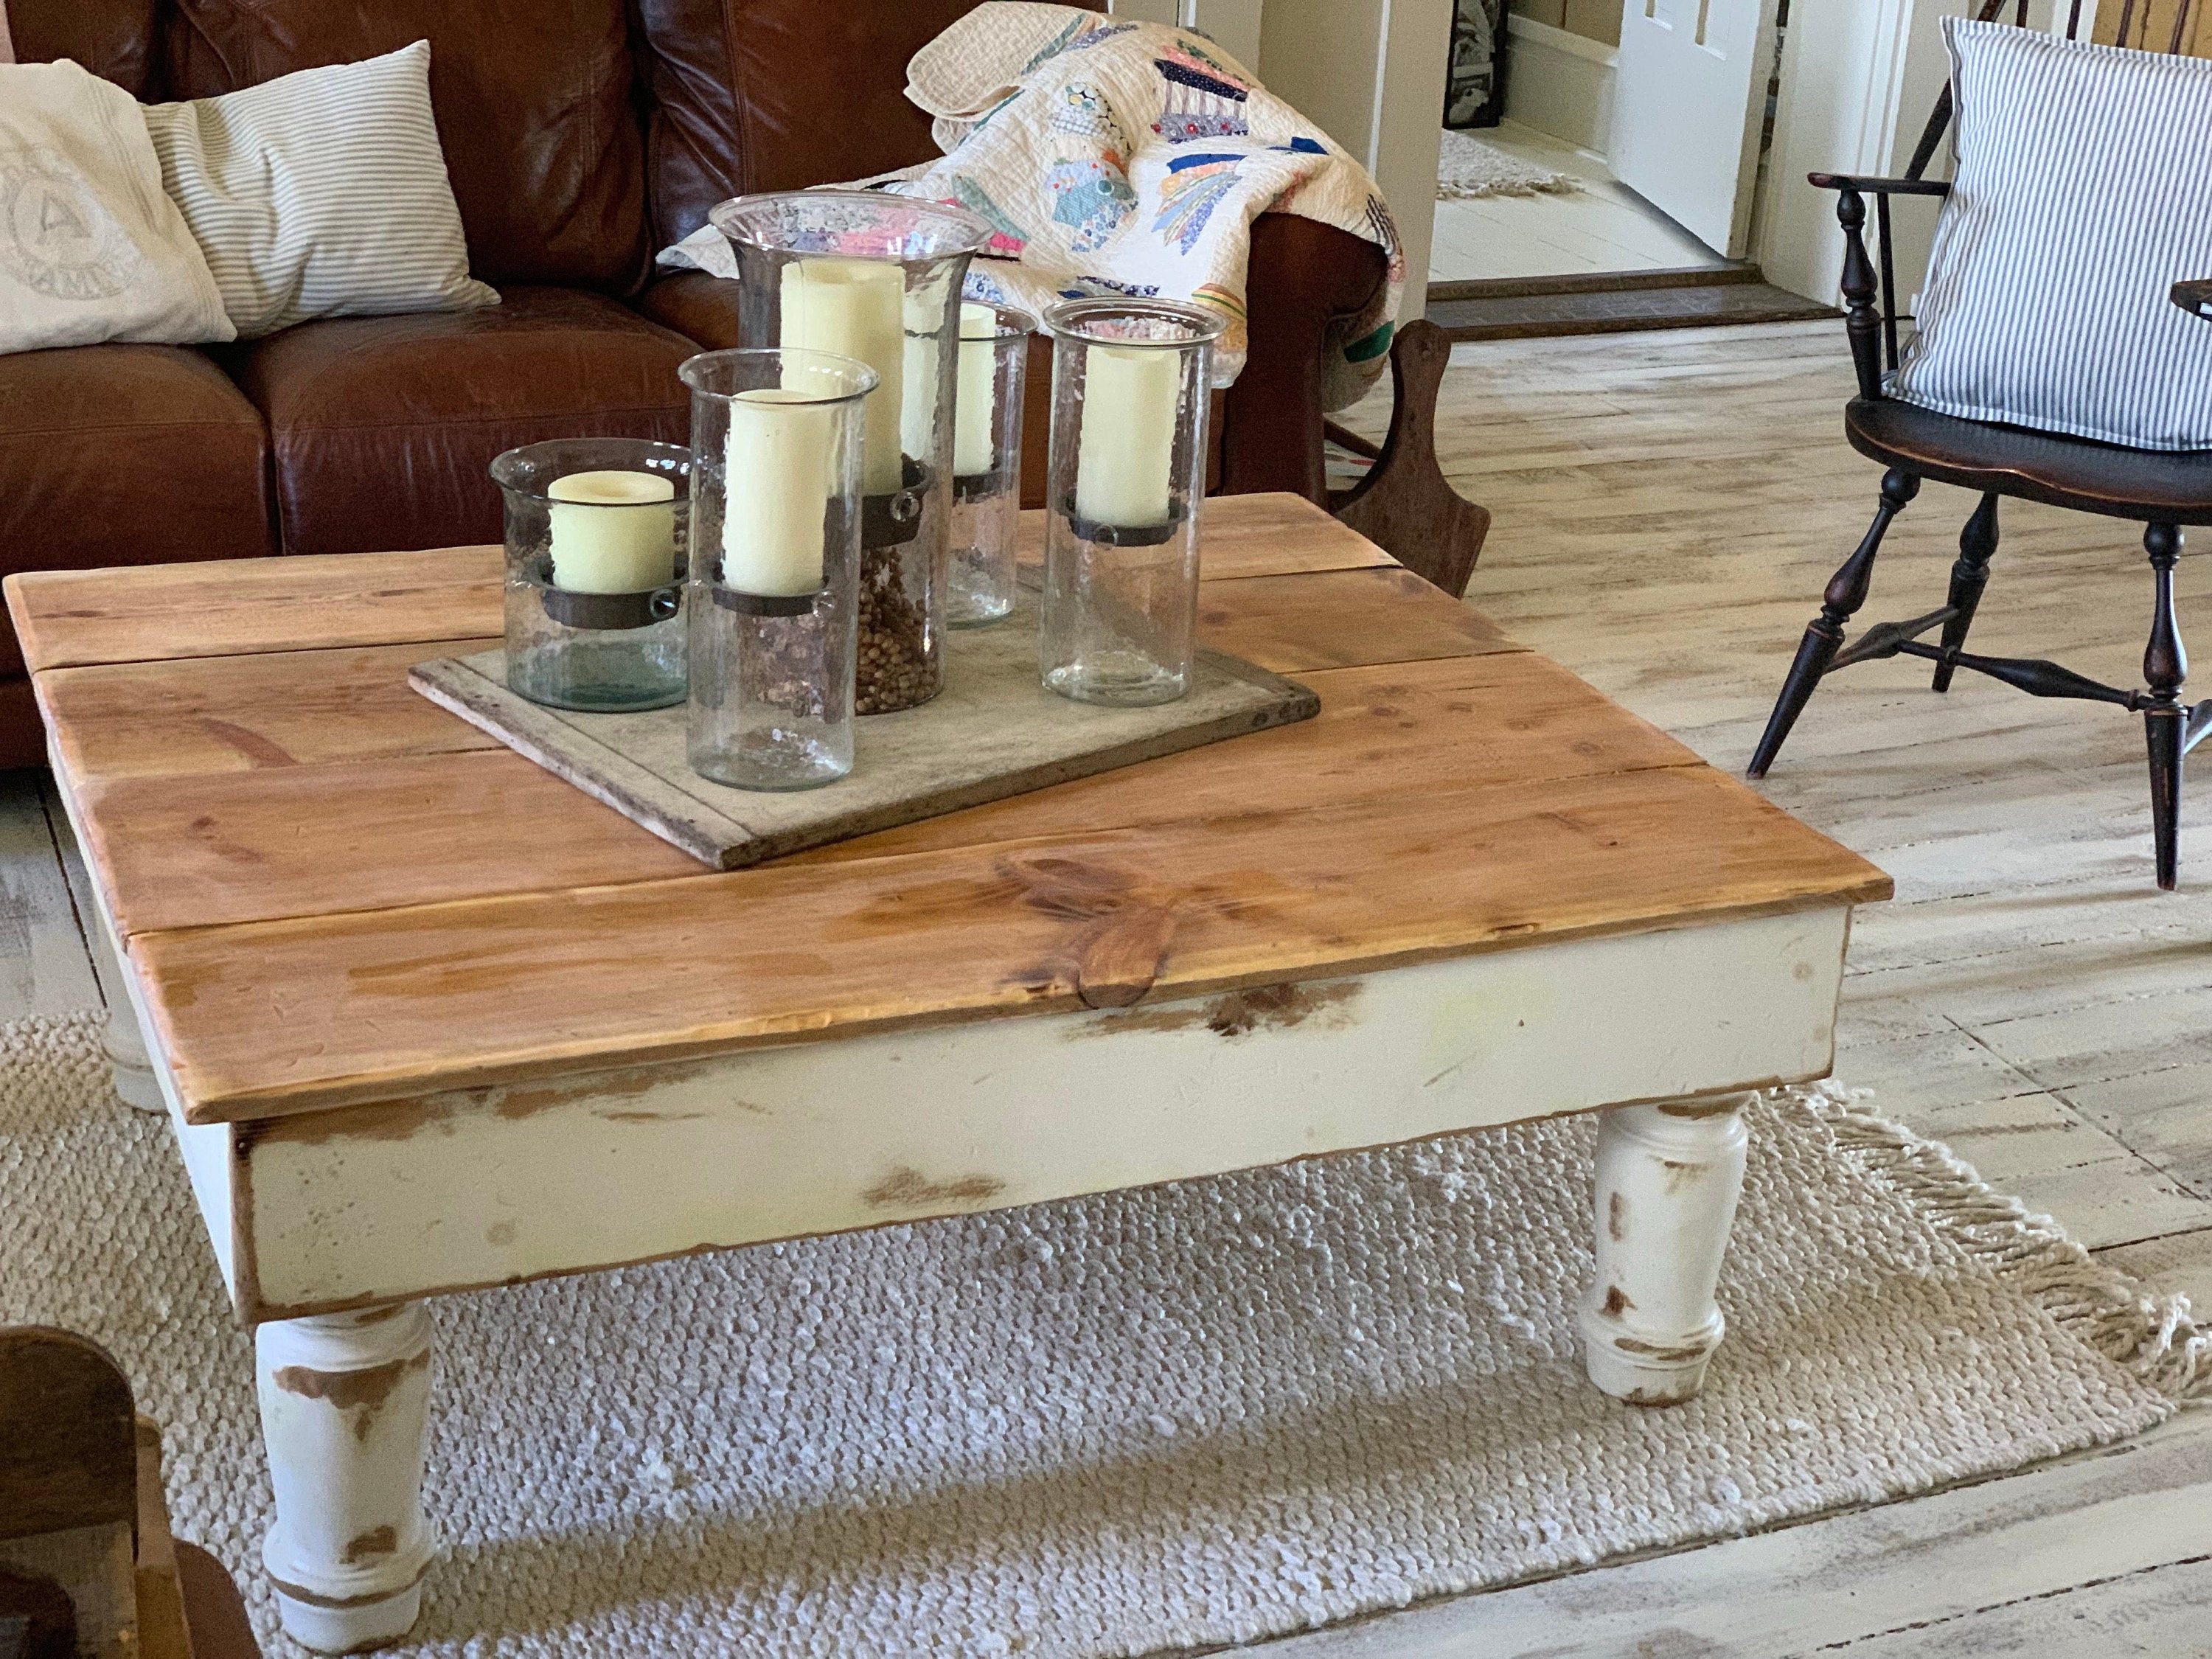 Farmhouse Coffee Table W Turned Legs Solid Rustic Reclaimed Salvaged Wood Custom Sizes Colors By Unique Primtiques Built Tough In Usa In 2020 Coffee End Tables Coffee Table Size Salvaged Wood